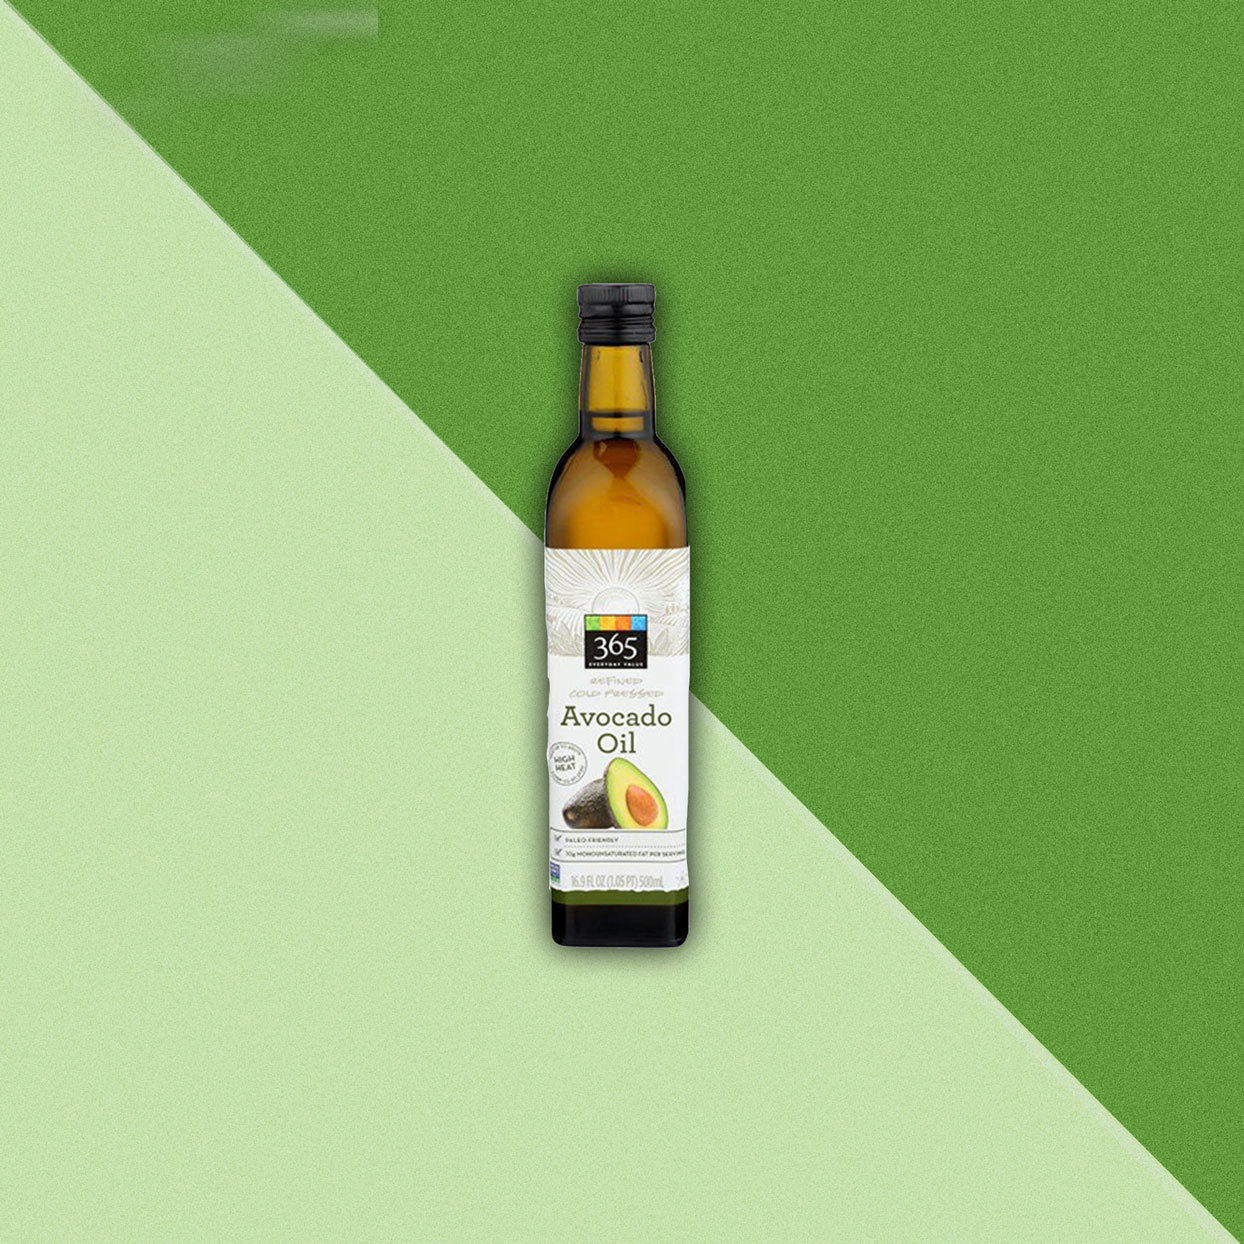 365 Everyday Value Avocado Oil